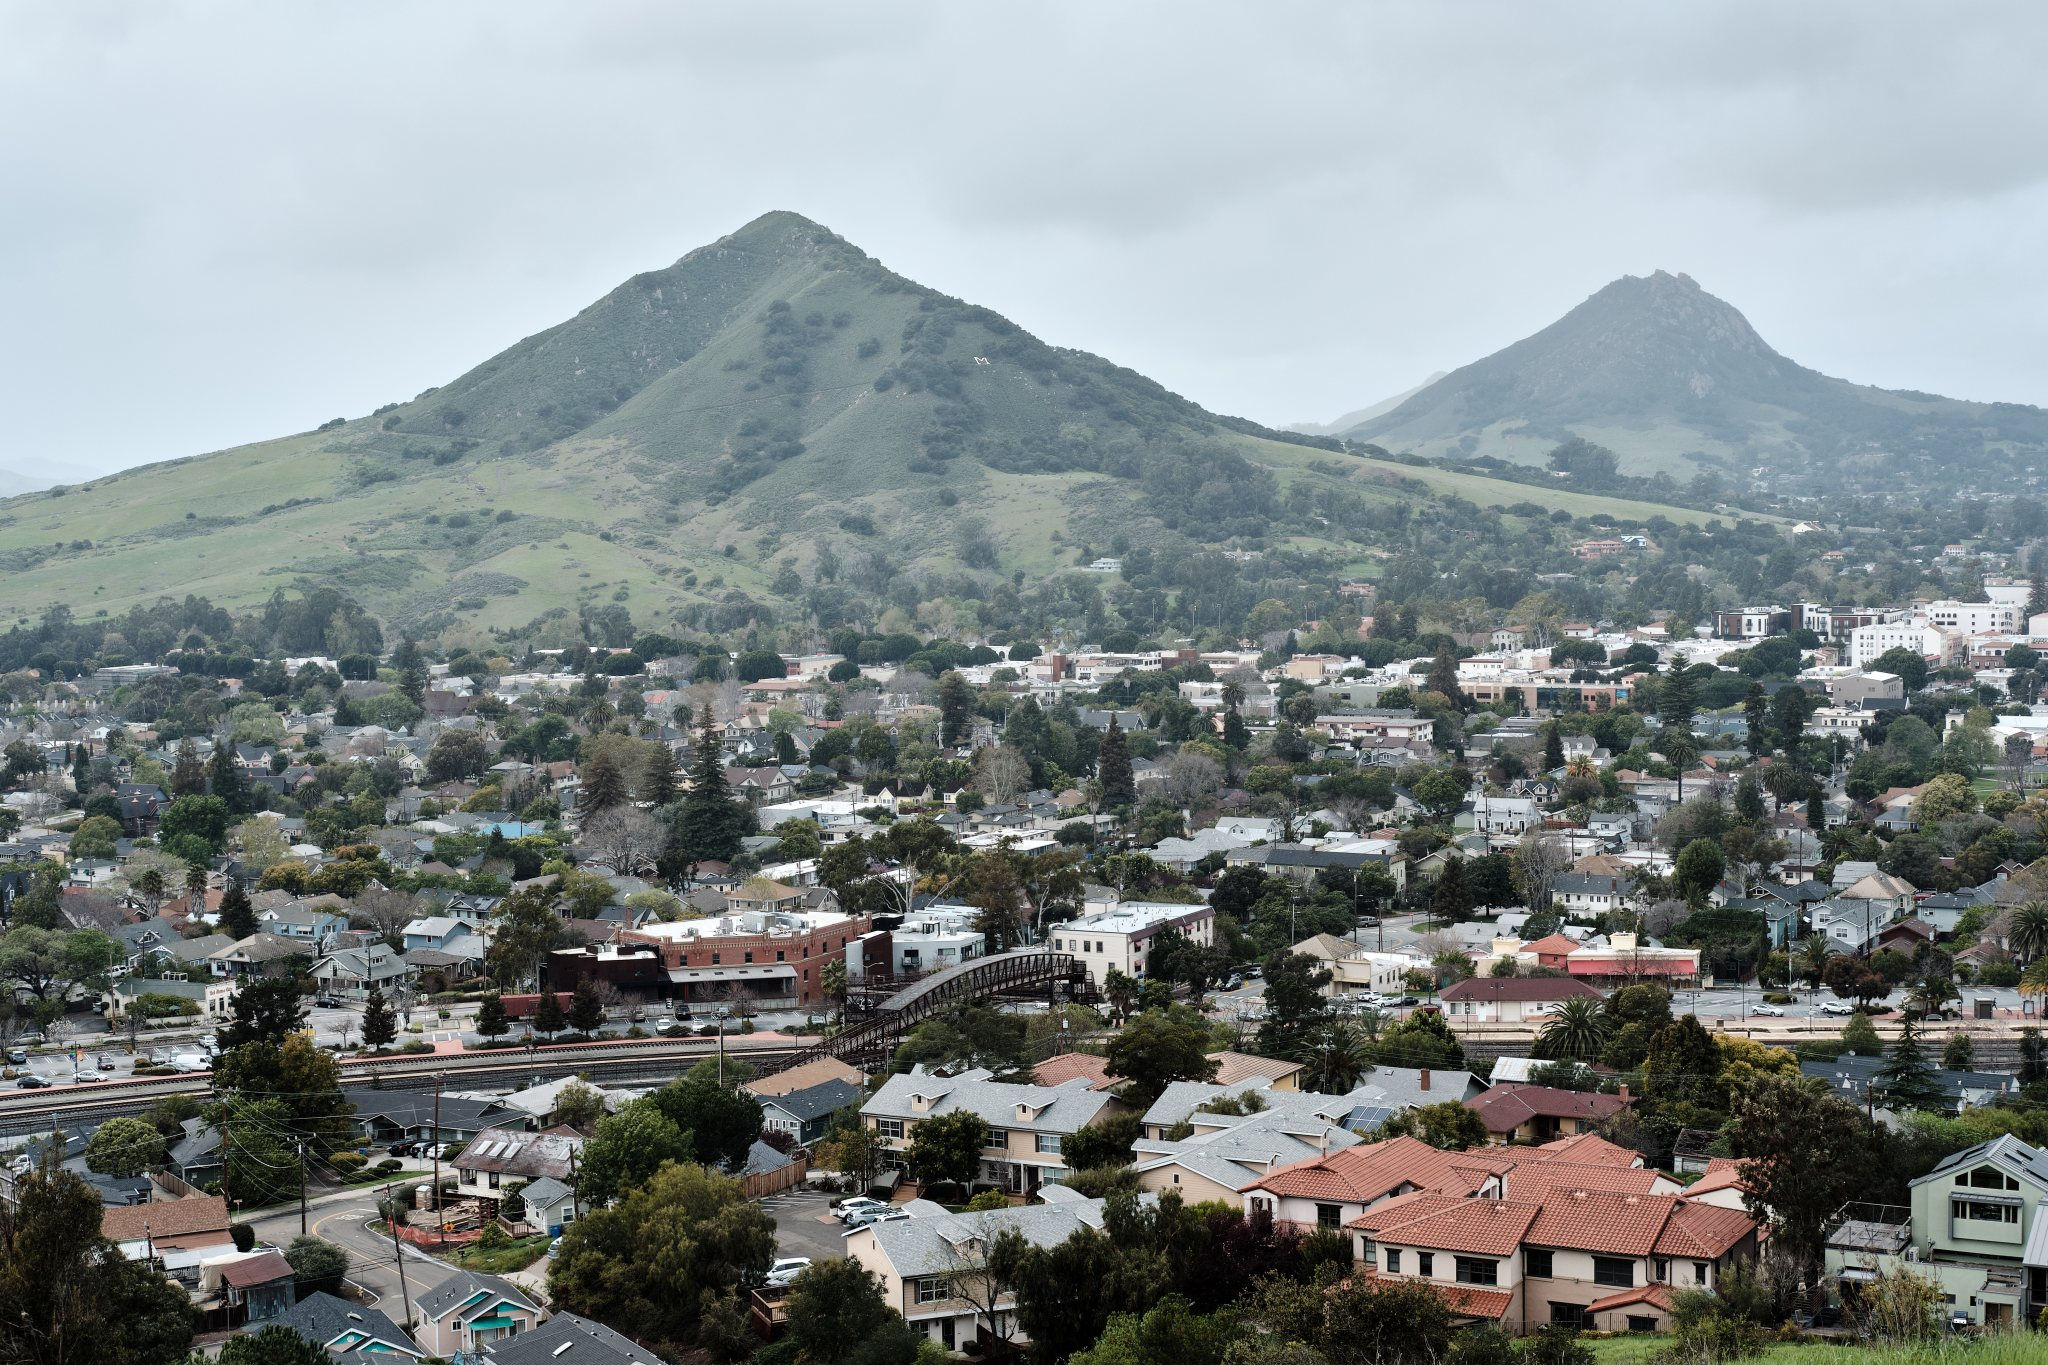 Photo of a San Luis Obispo, California  residential area, the train station, Cerro San Luis, and Bishop Peak.